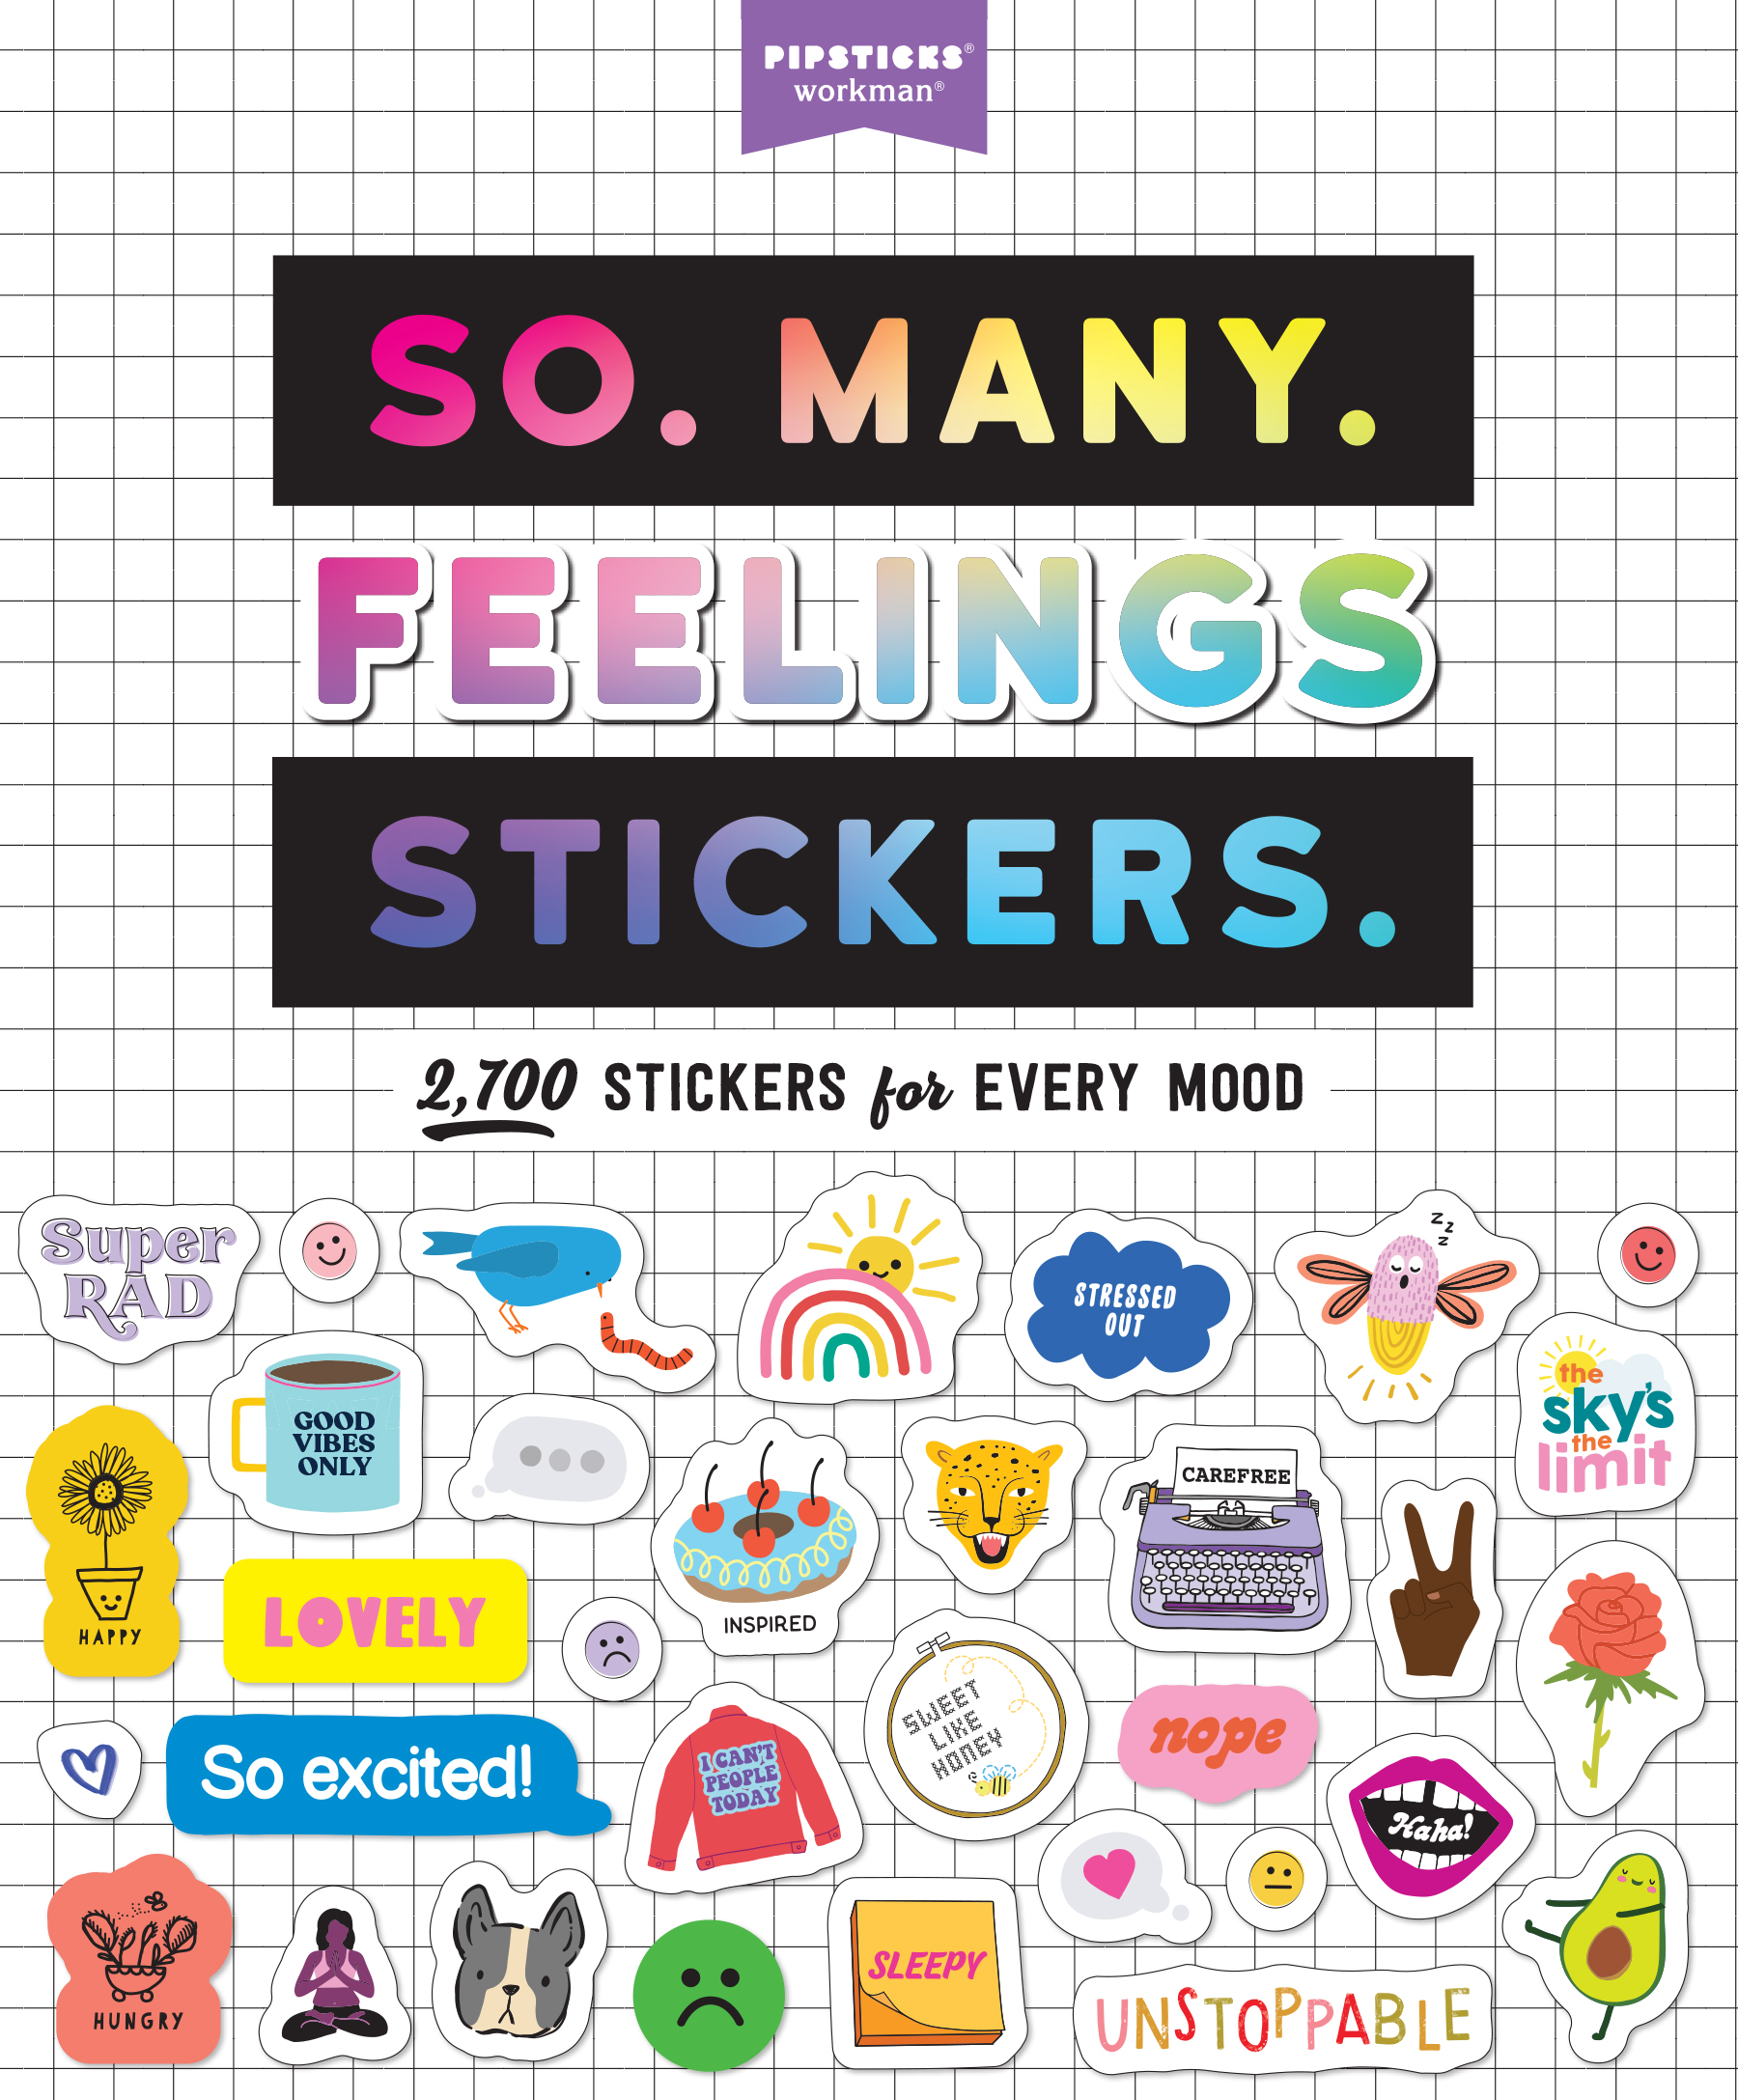 So. Many. Feelings Stickers.